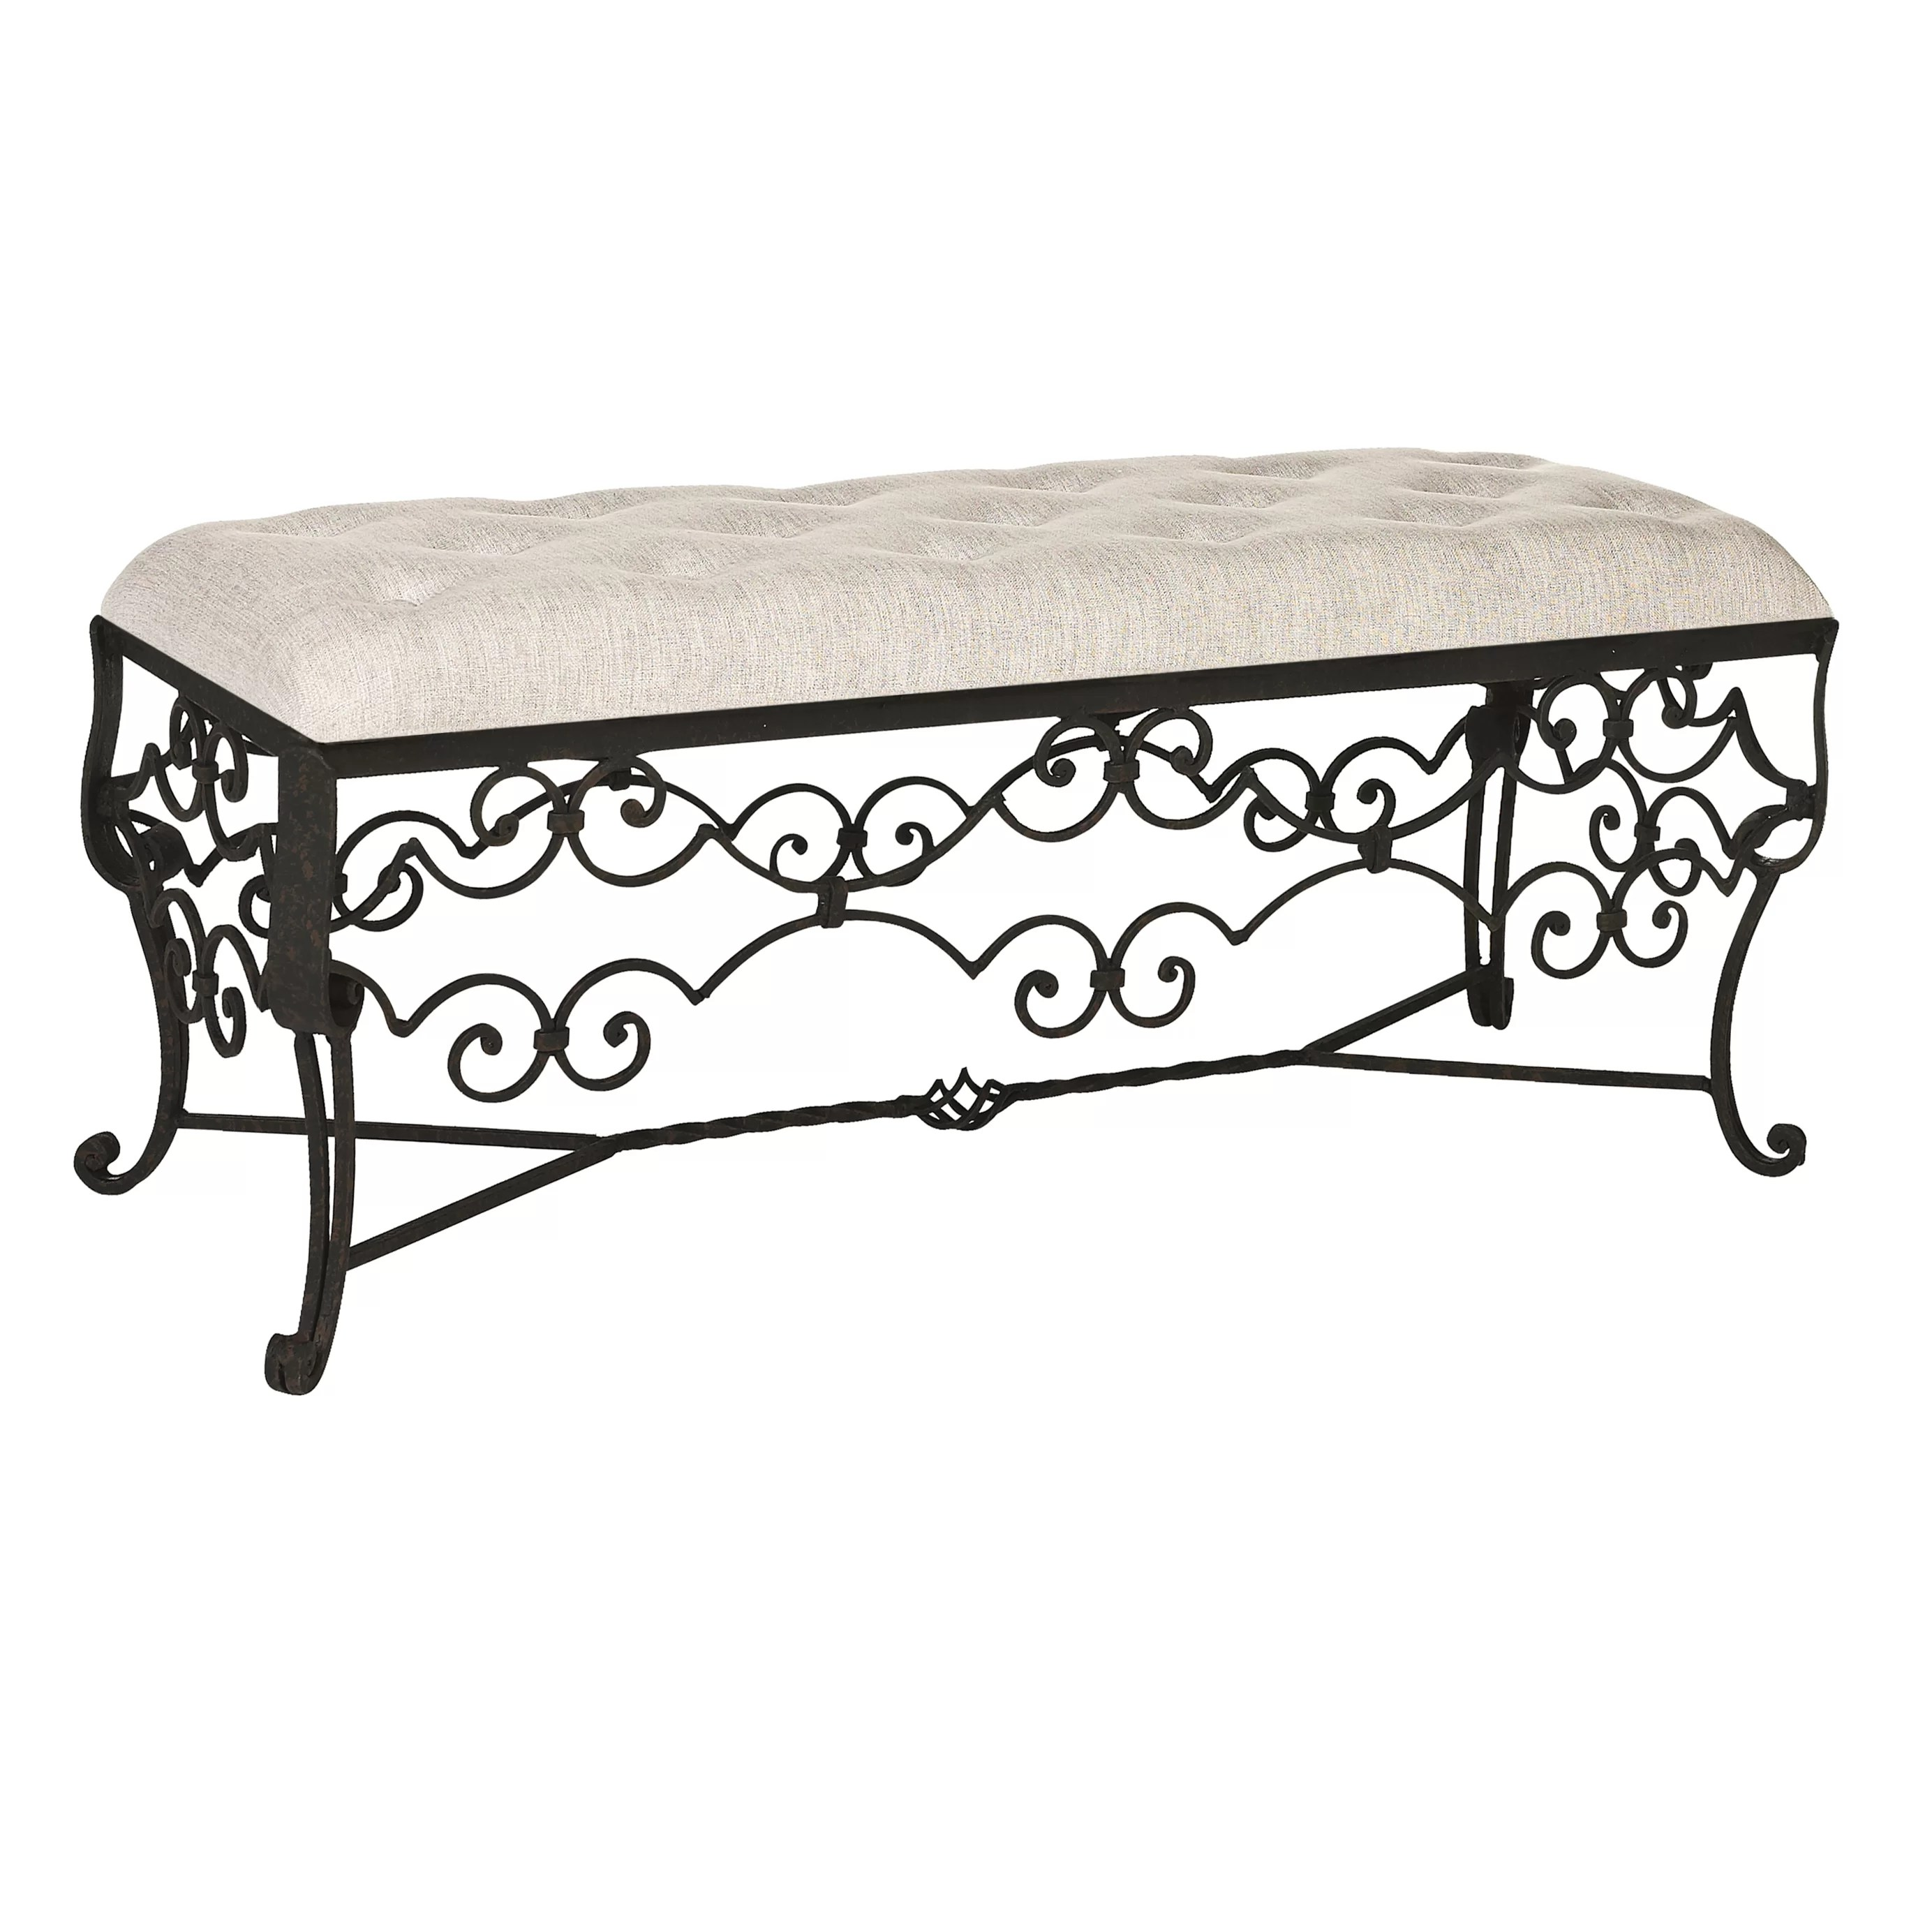 Ellahome Wilmington Bedroom Upholstered Bench Wayfair